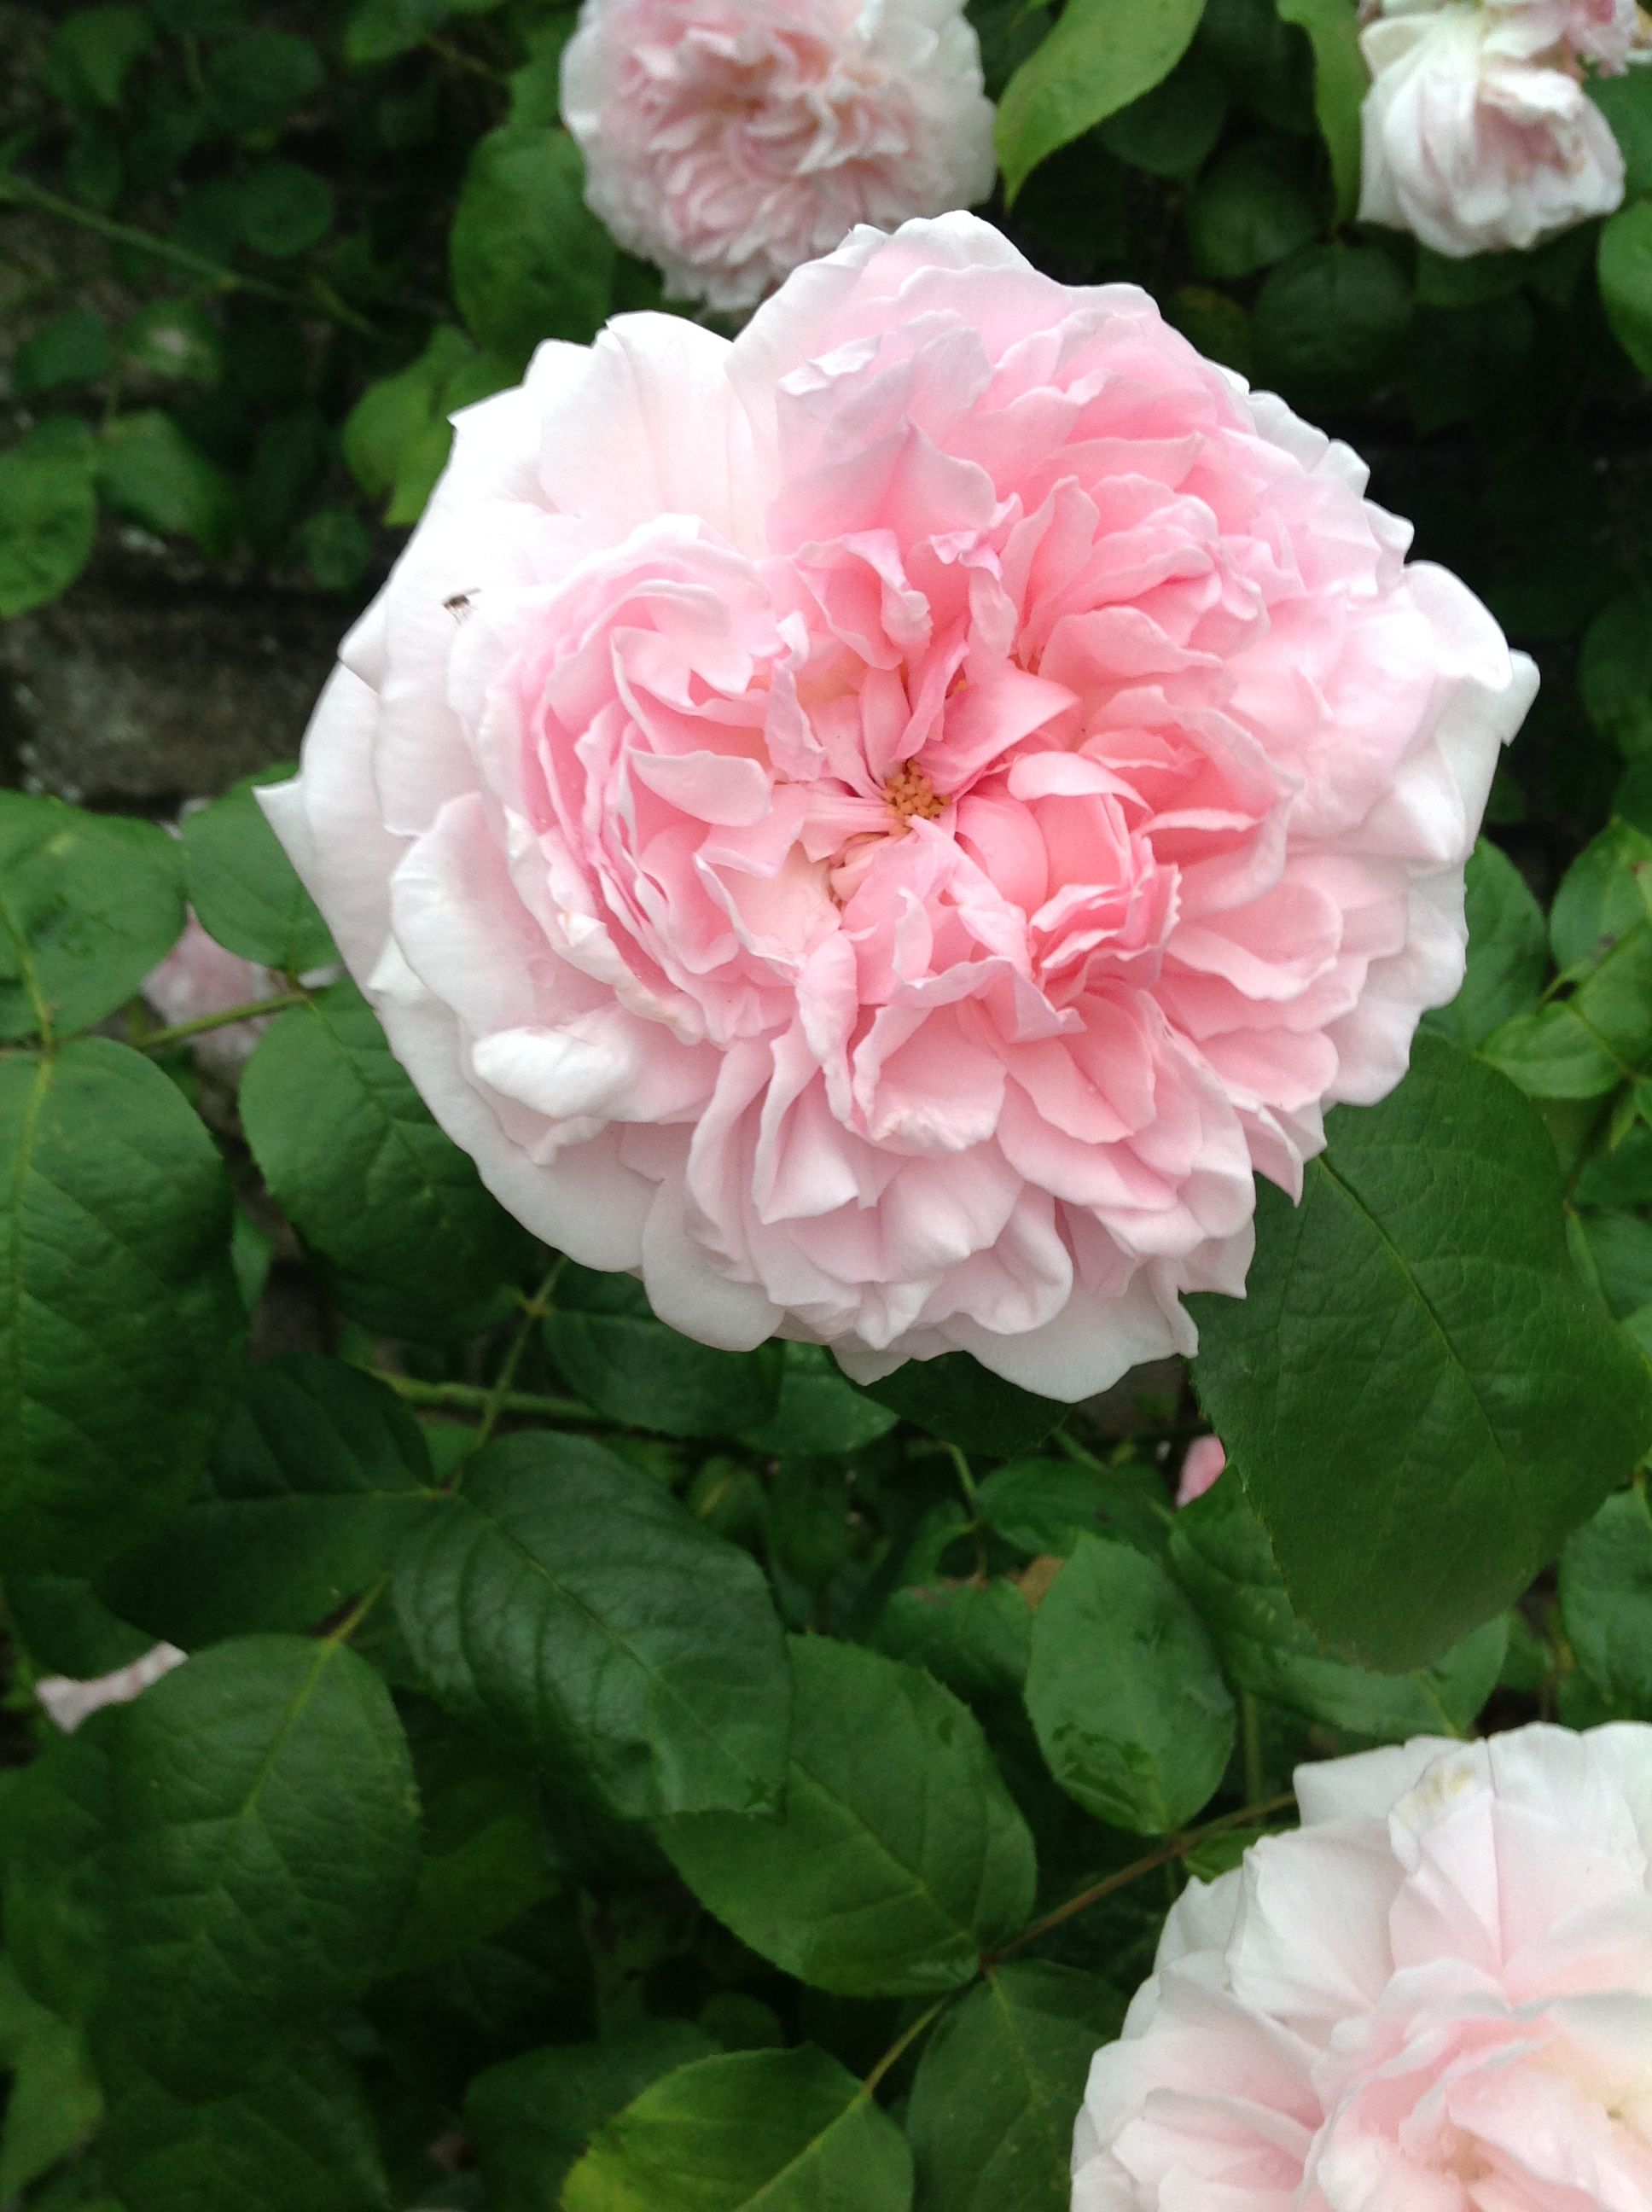 David austin rose called geoff hamilton who used to be my